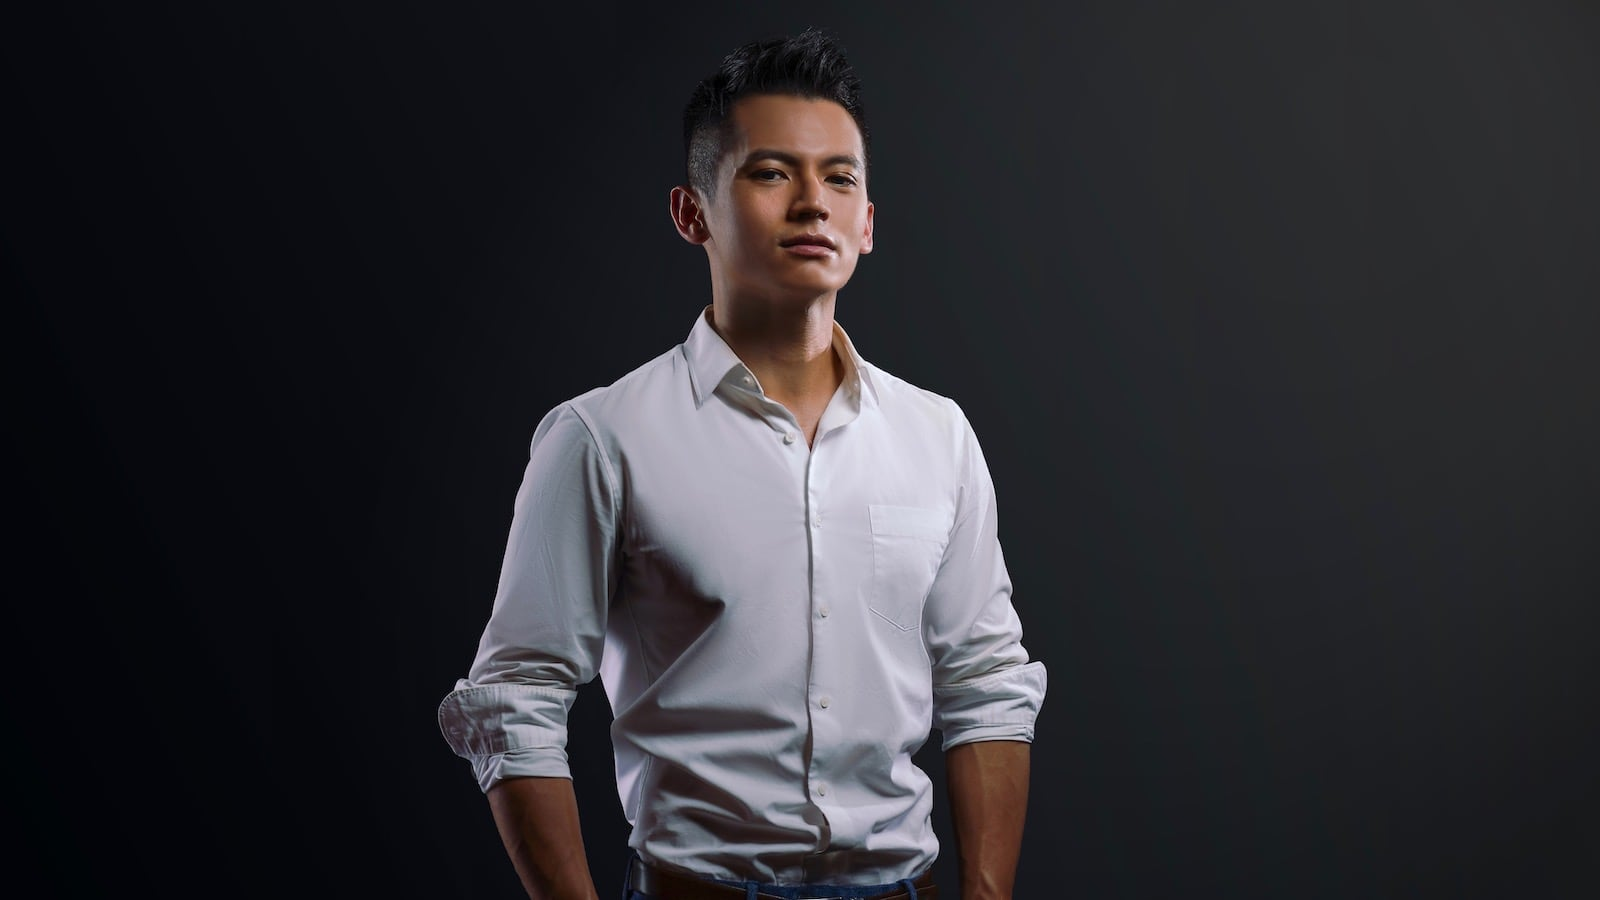 Po-Hung interview about the gay life in Taiwan